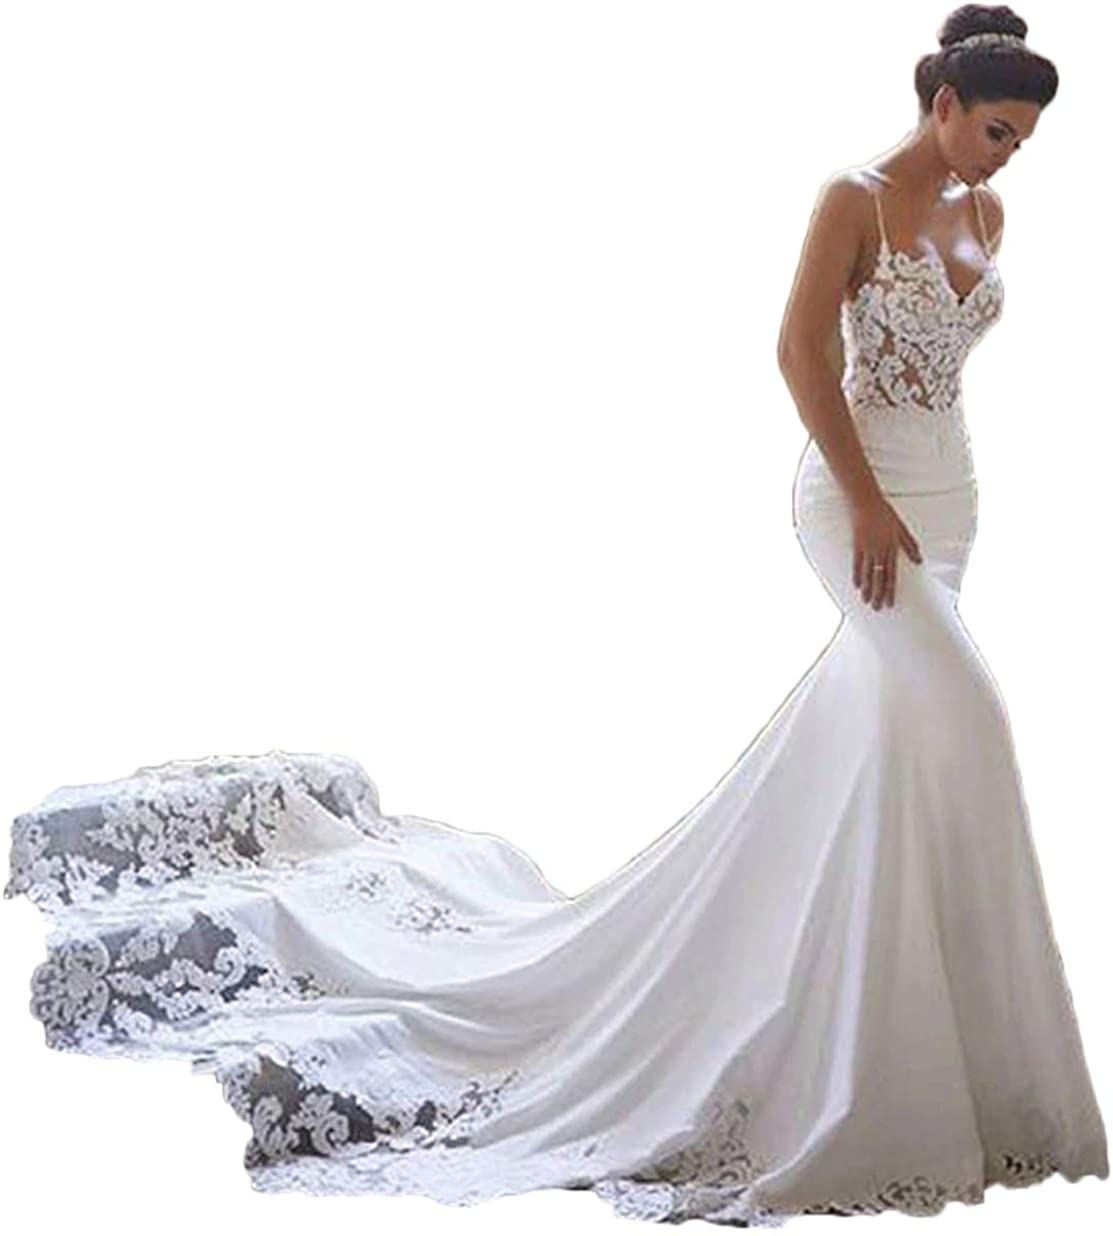 RYANTH Women's Mermaid Wedding Dresses New item Sexy Bride Lace Special price for a limited time Open